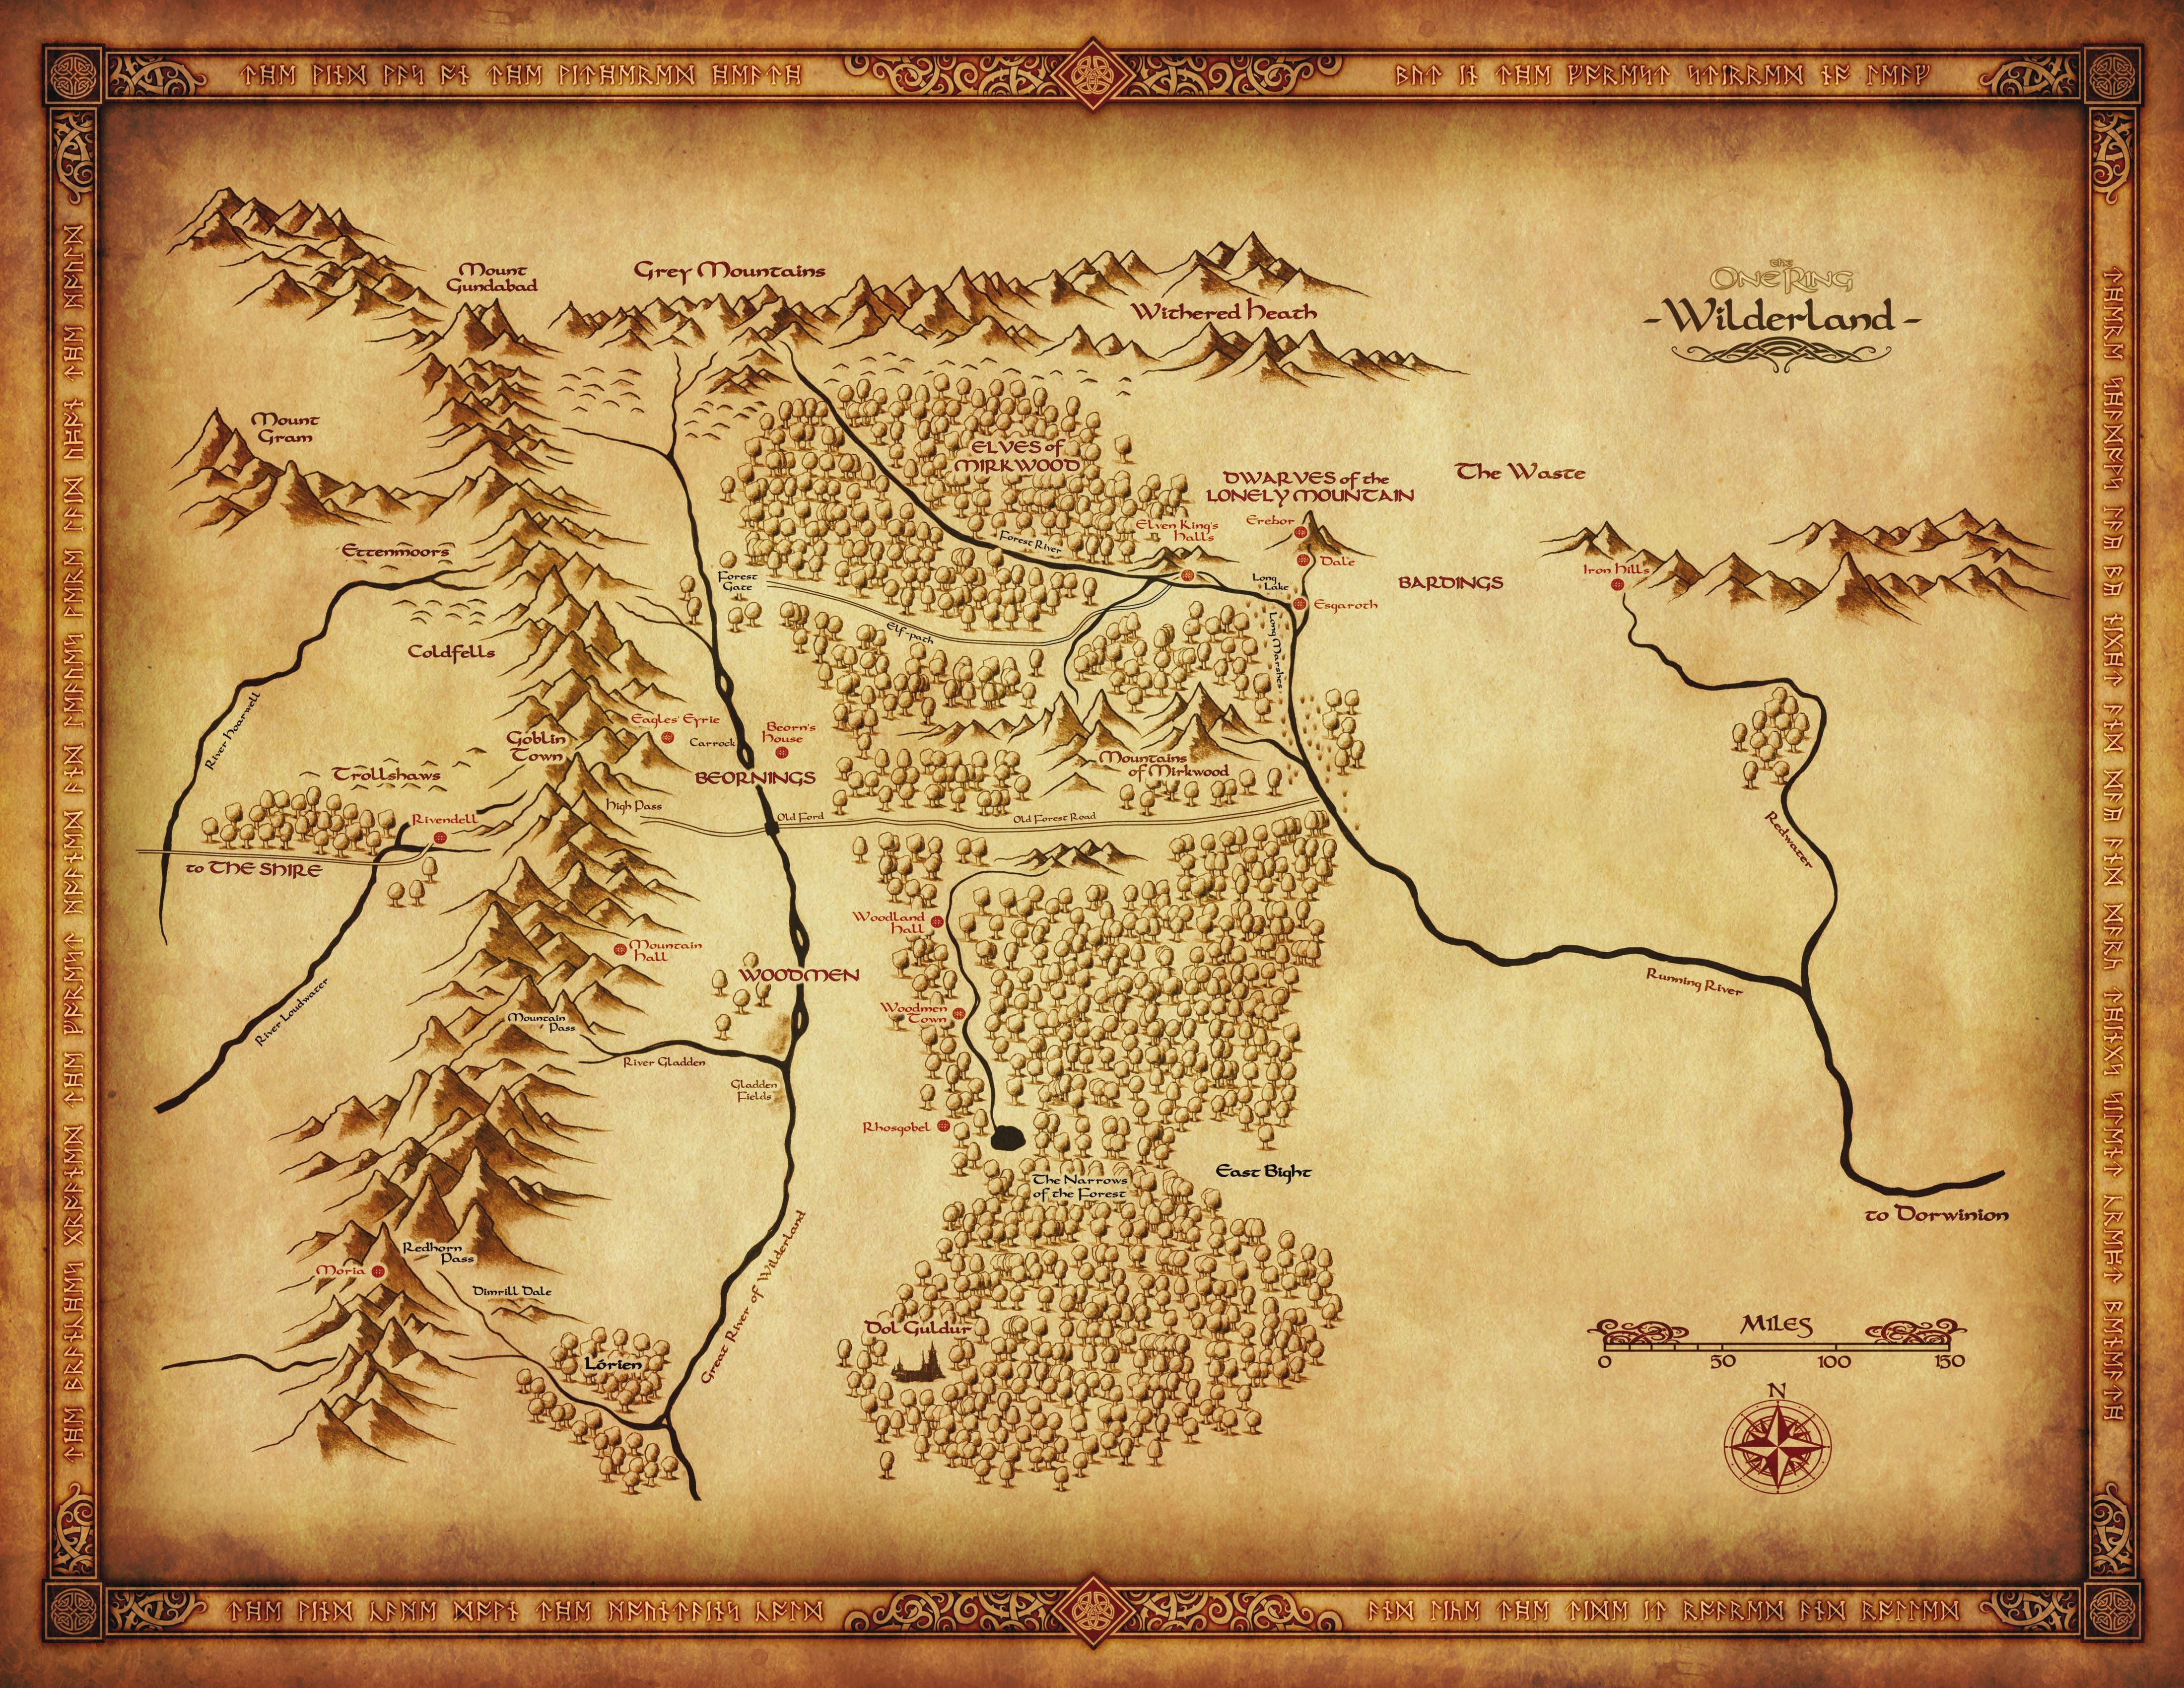 Map Of Wilderland From Cubicle 7 The One Ring In 2019 Middle